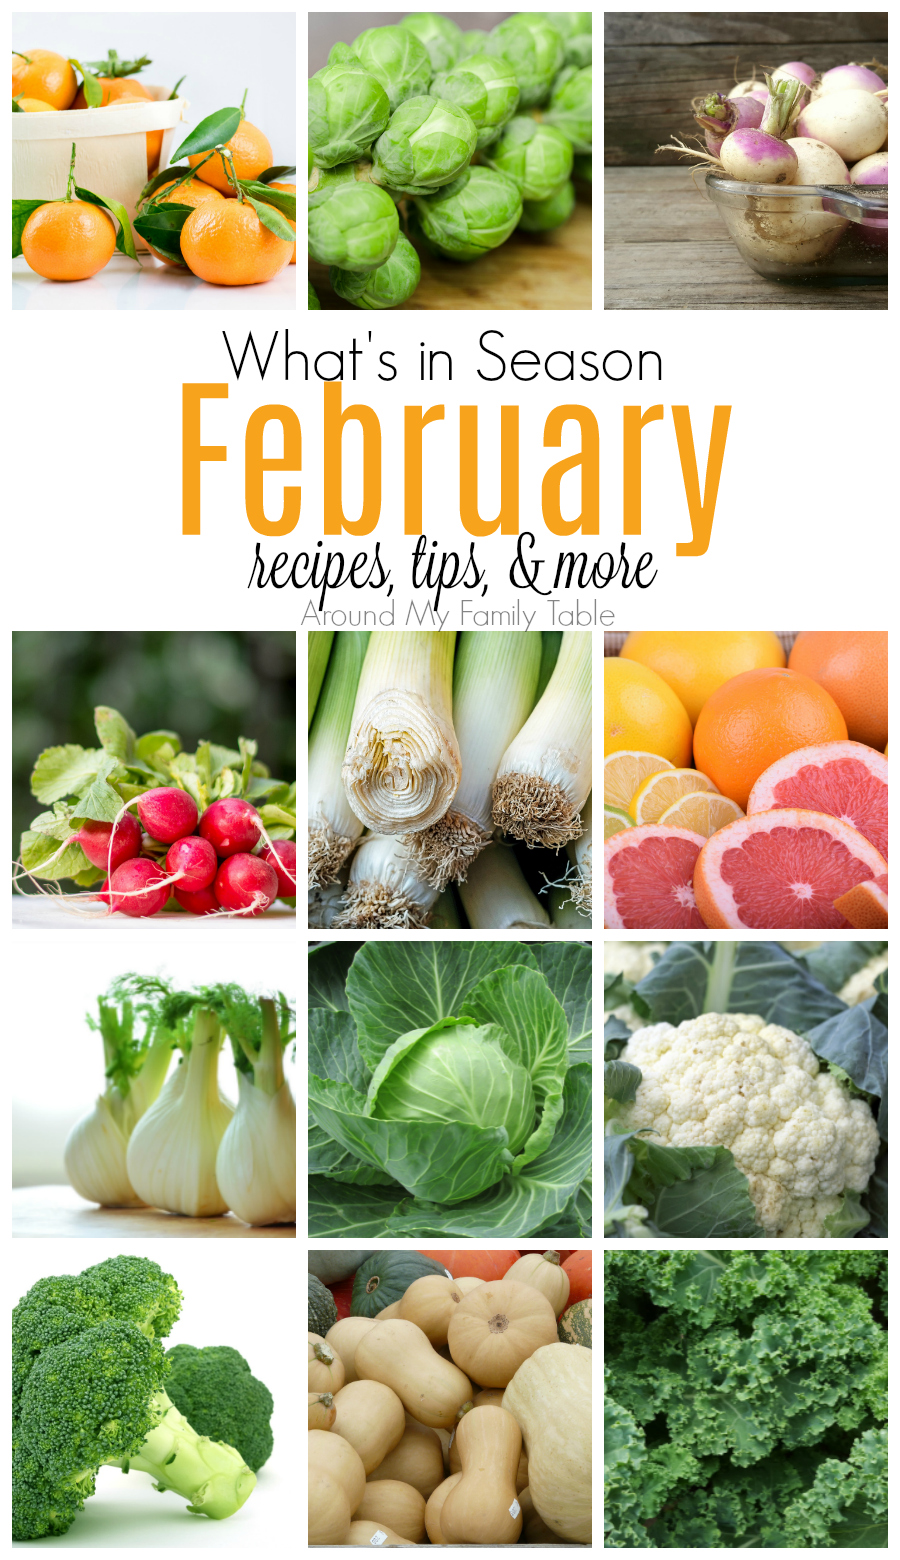 ThisFebruary -- What's In Season Guideis full of tips and recipes to inspire you to shop and eat seasonally. #seaonalproduce #whatsinseason #february